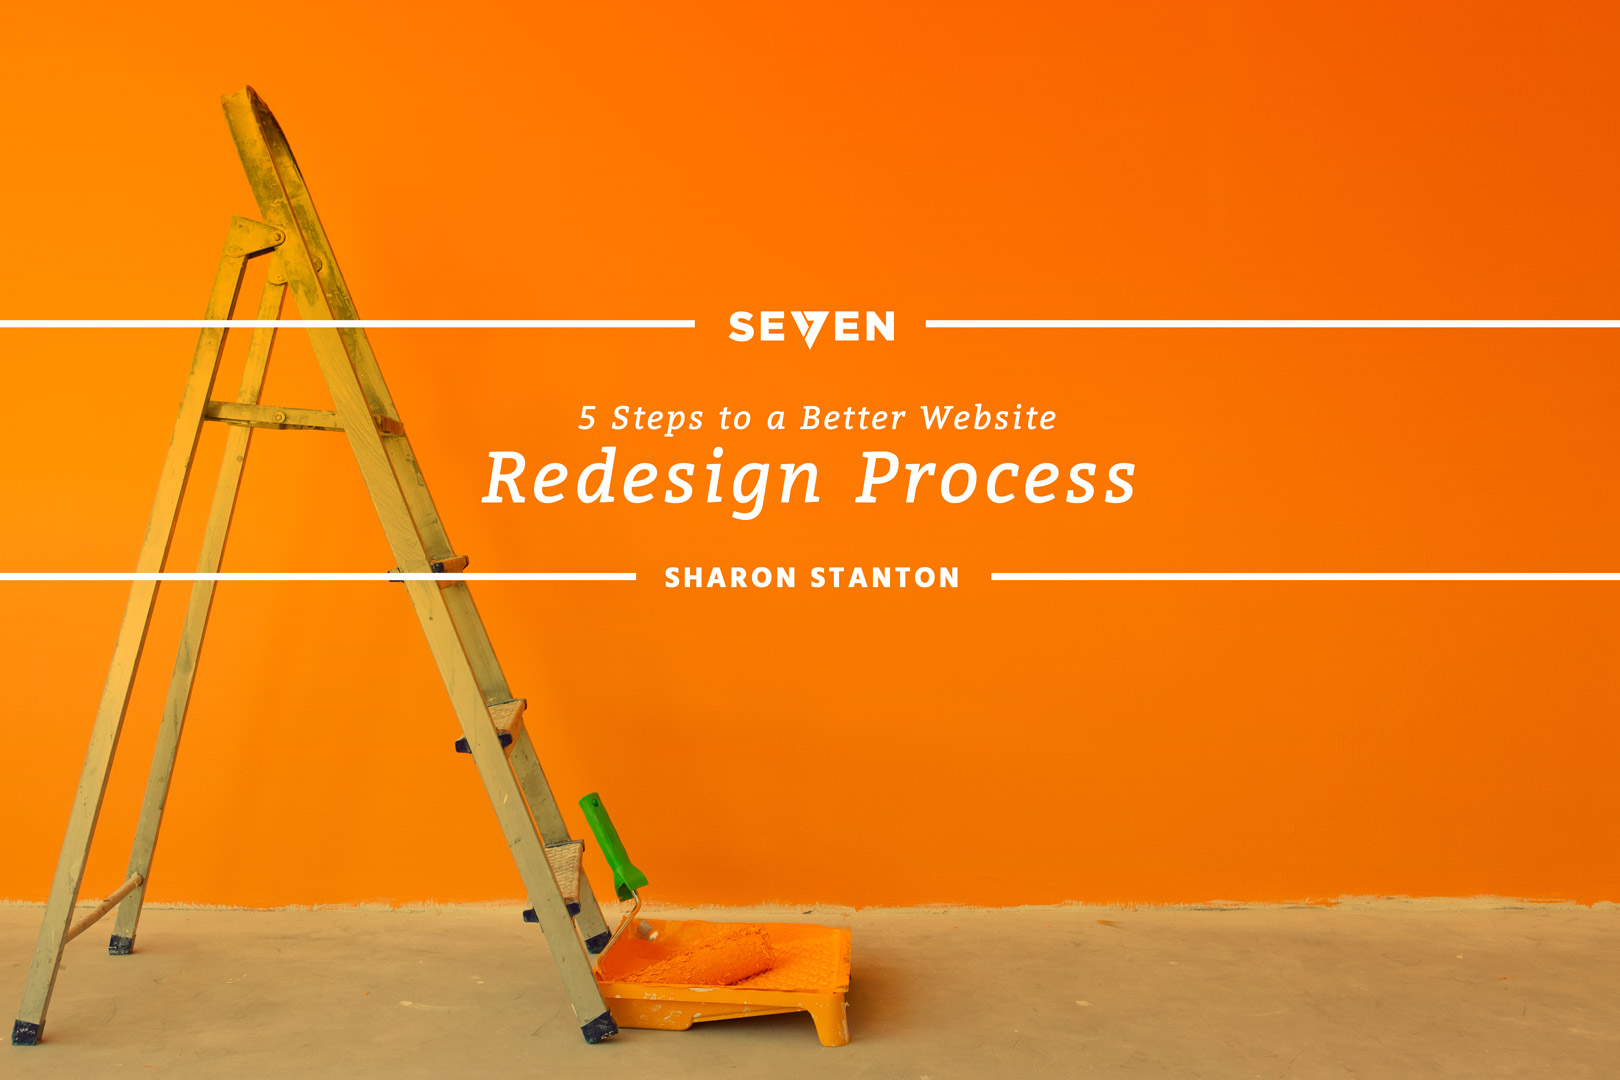 5 Steps to a Better Website Redesign Process